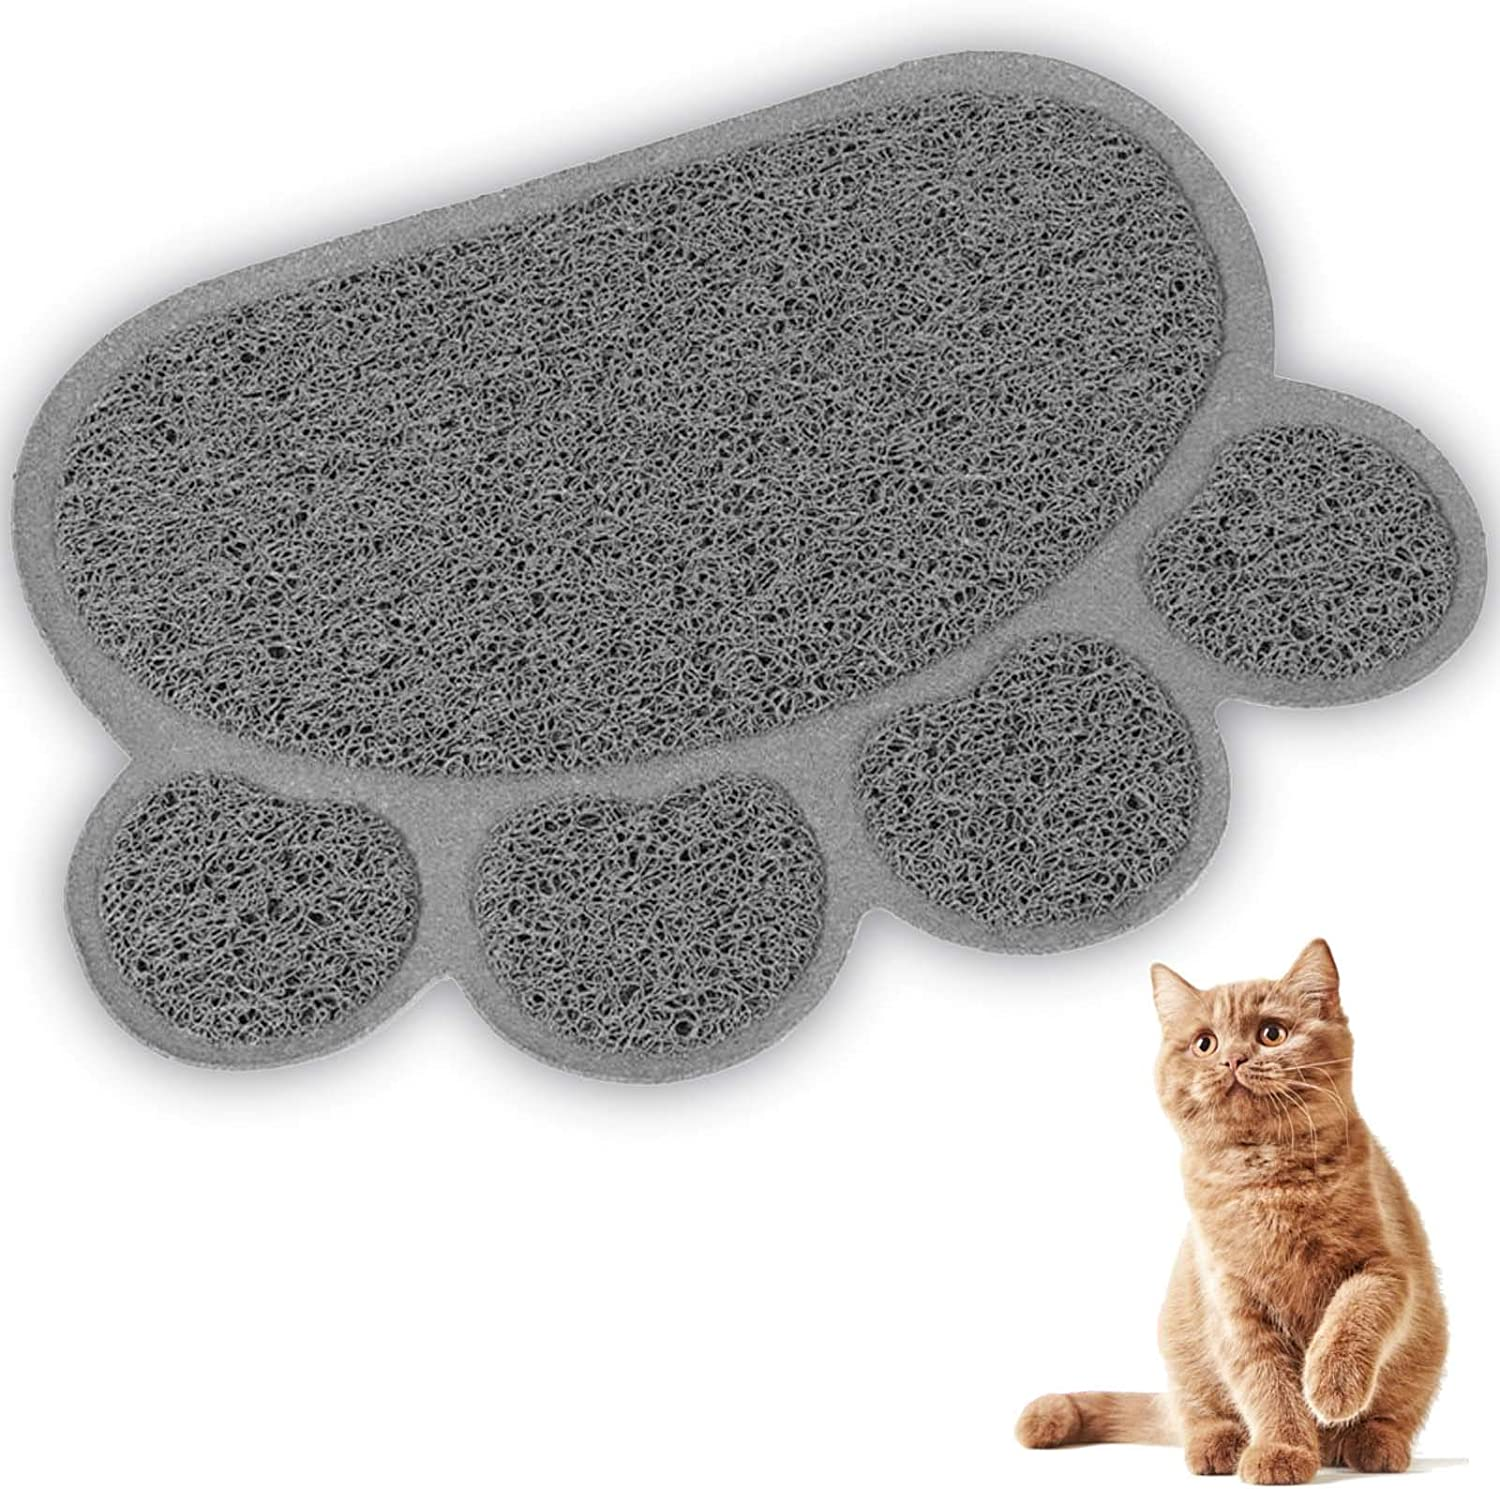 Cat Litter Mat, Pet Litter Rugs, Small Dogs and Rabbits, Paw-Shaped Feeding Mat Trapping Pad Scatter Control Water Resistant Soft on Kitty Paws Easy to Clean 40x30cm